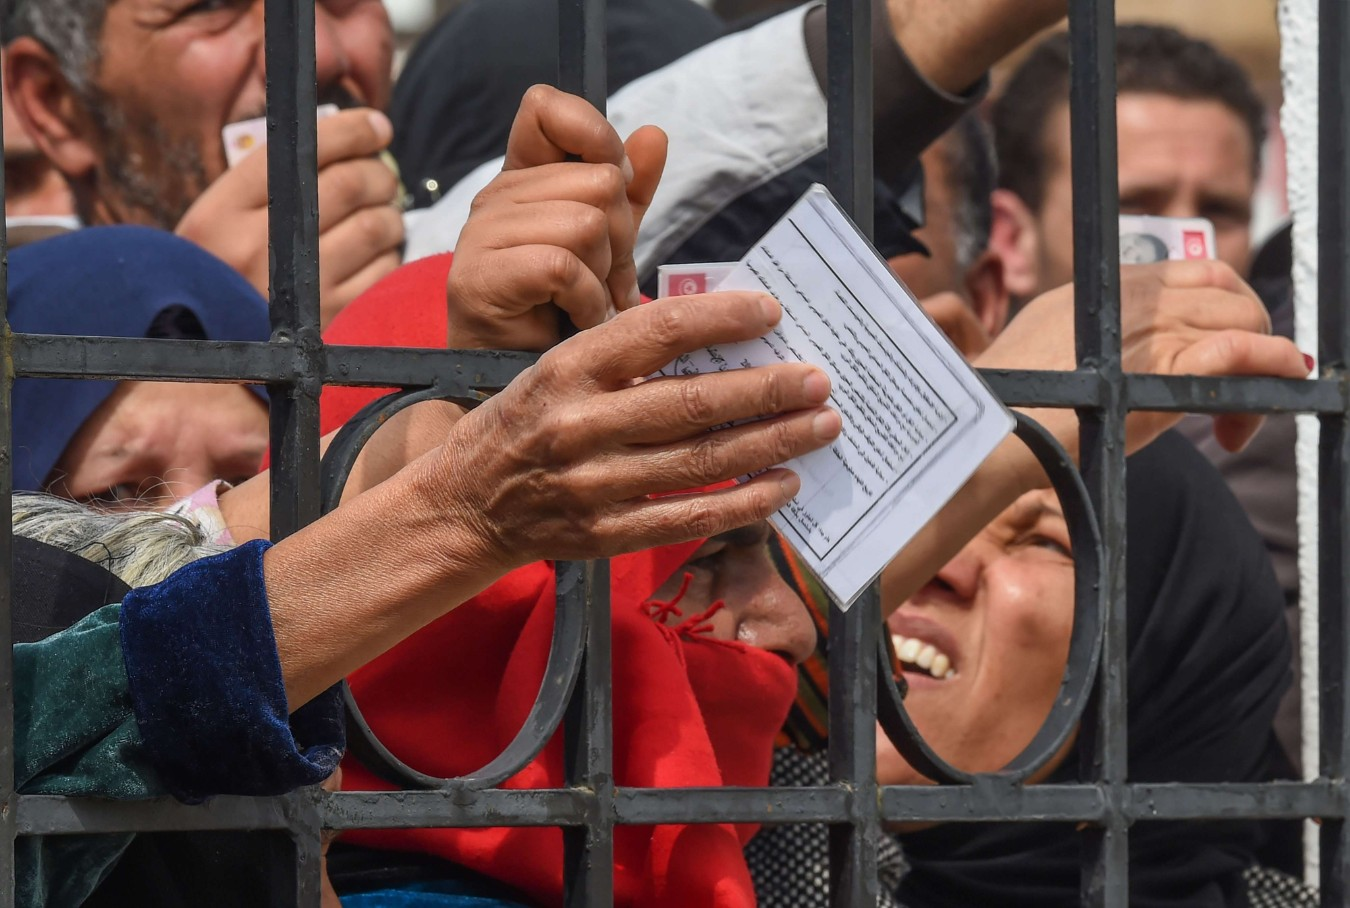 Needy Tunisian citizens gather with their identification cards in Mnihla district outside of Tunis on March 30, clamouring for financial aid promised by the government. (AFP)